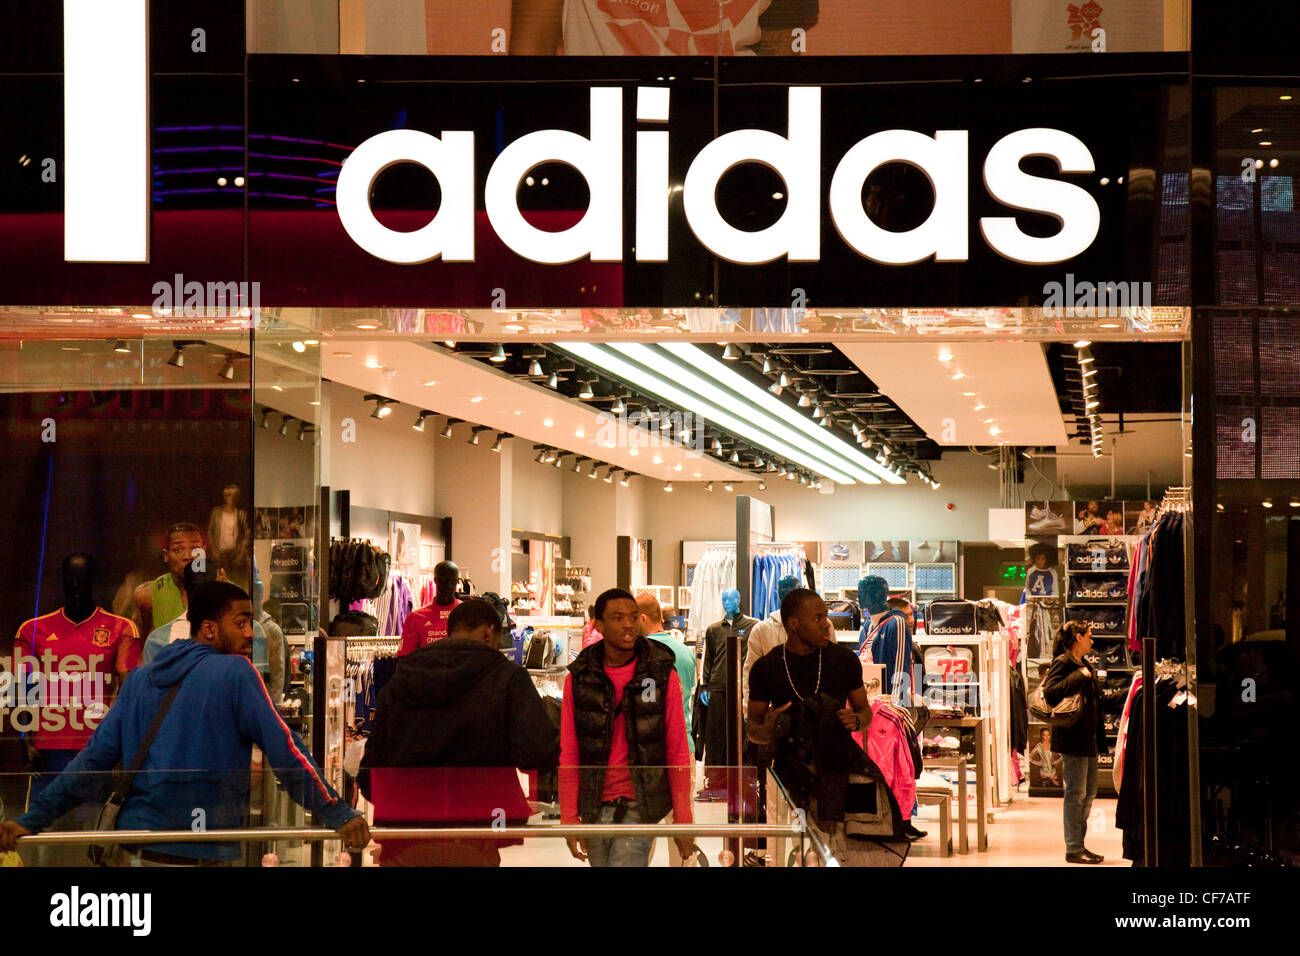 Adidas Store Display Stockfotos und bilder Kaufen Alamy